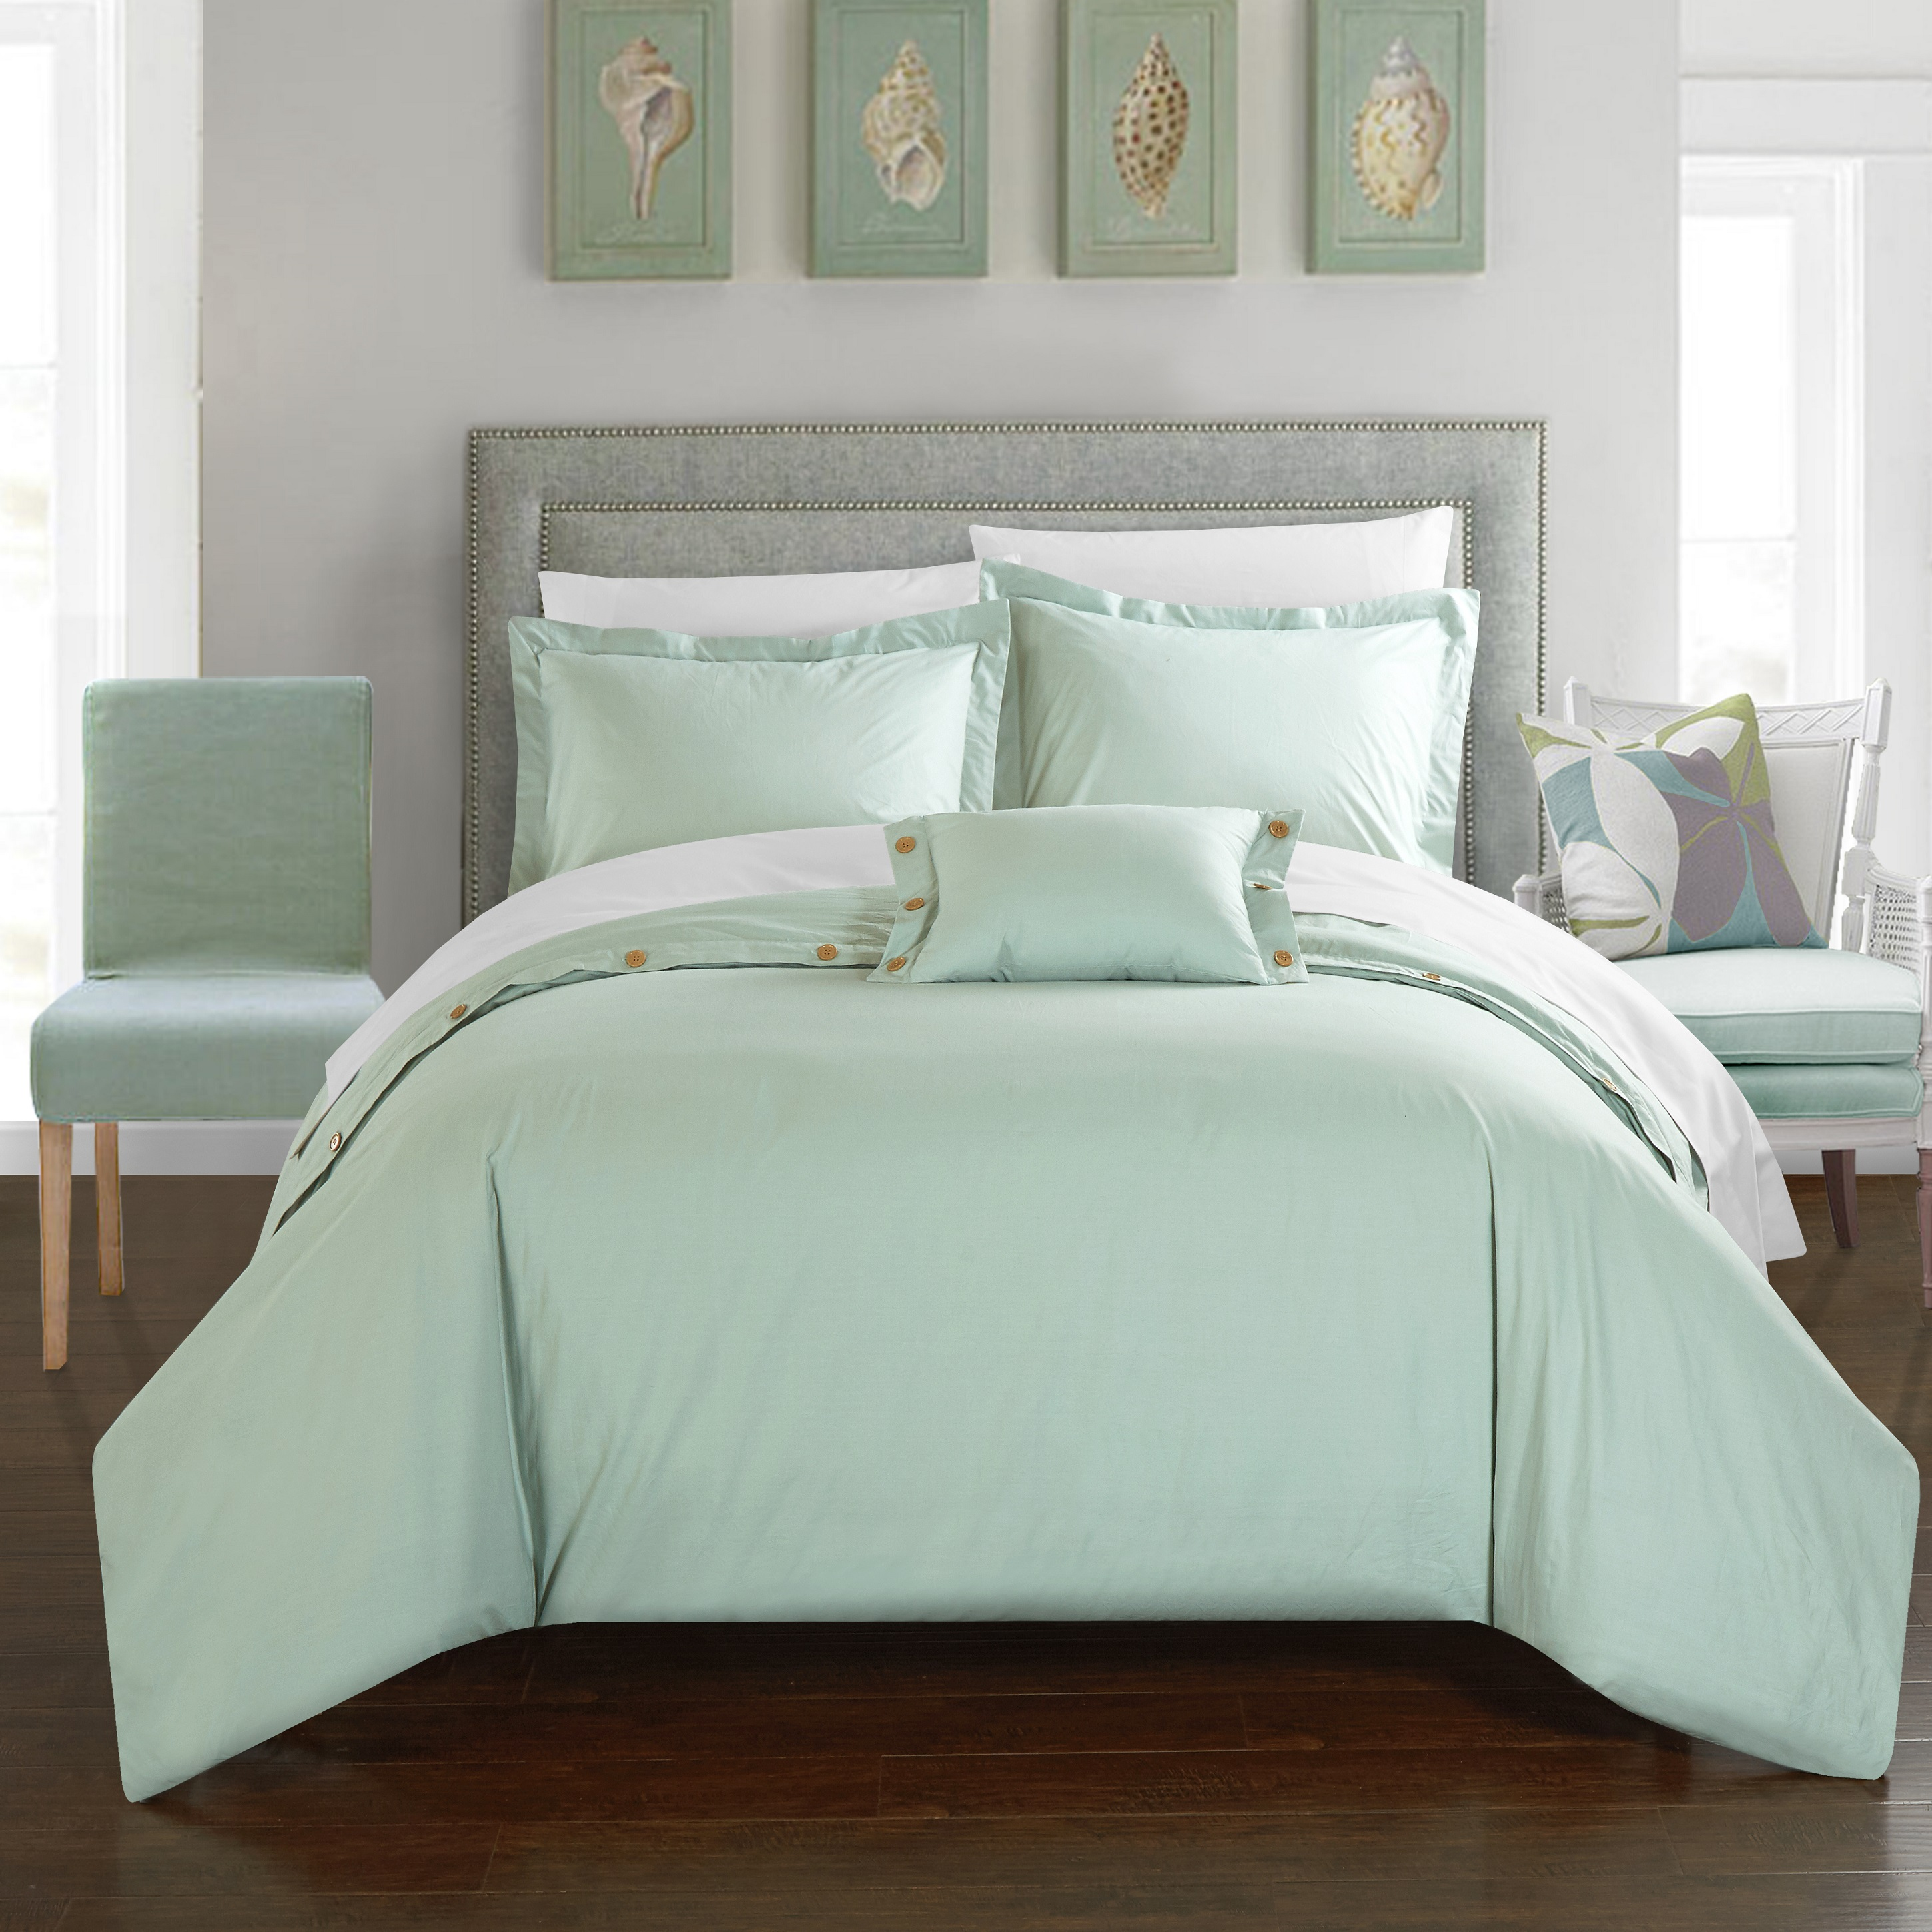 Chic Home 3-Piece Astrid 200 Thread Count COMBED FINISH 100% Cotton Twill Weave Decorative Button Closure Detail Twin Duvet Cover Set Aqua Shams and Decorative Pillows included